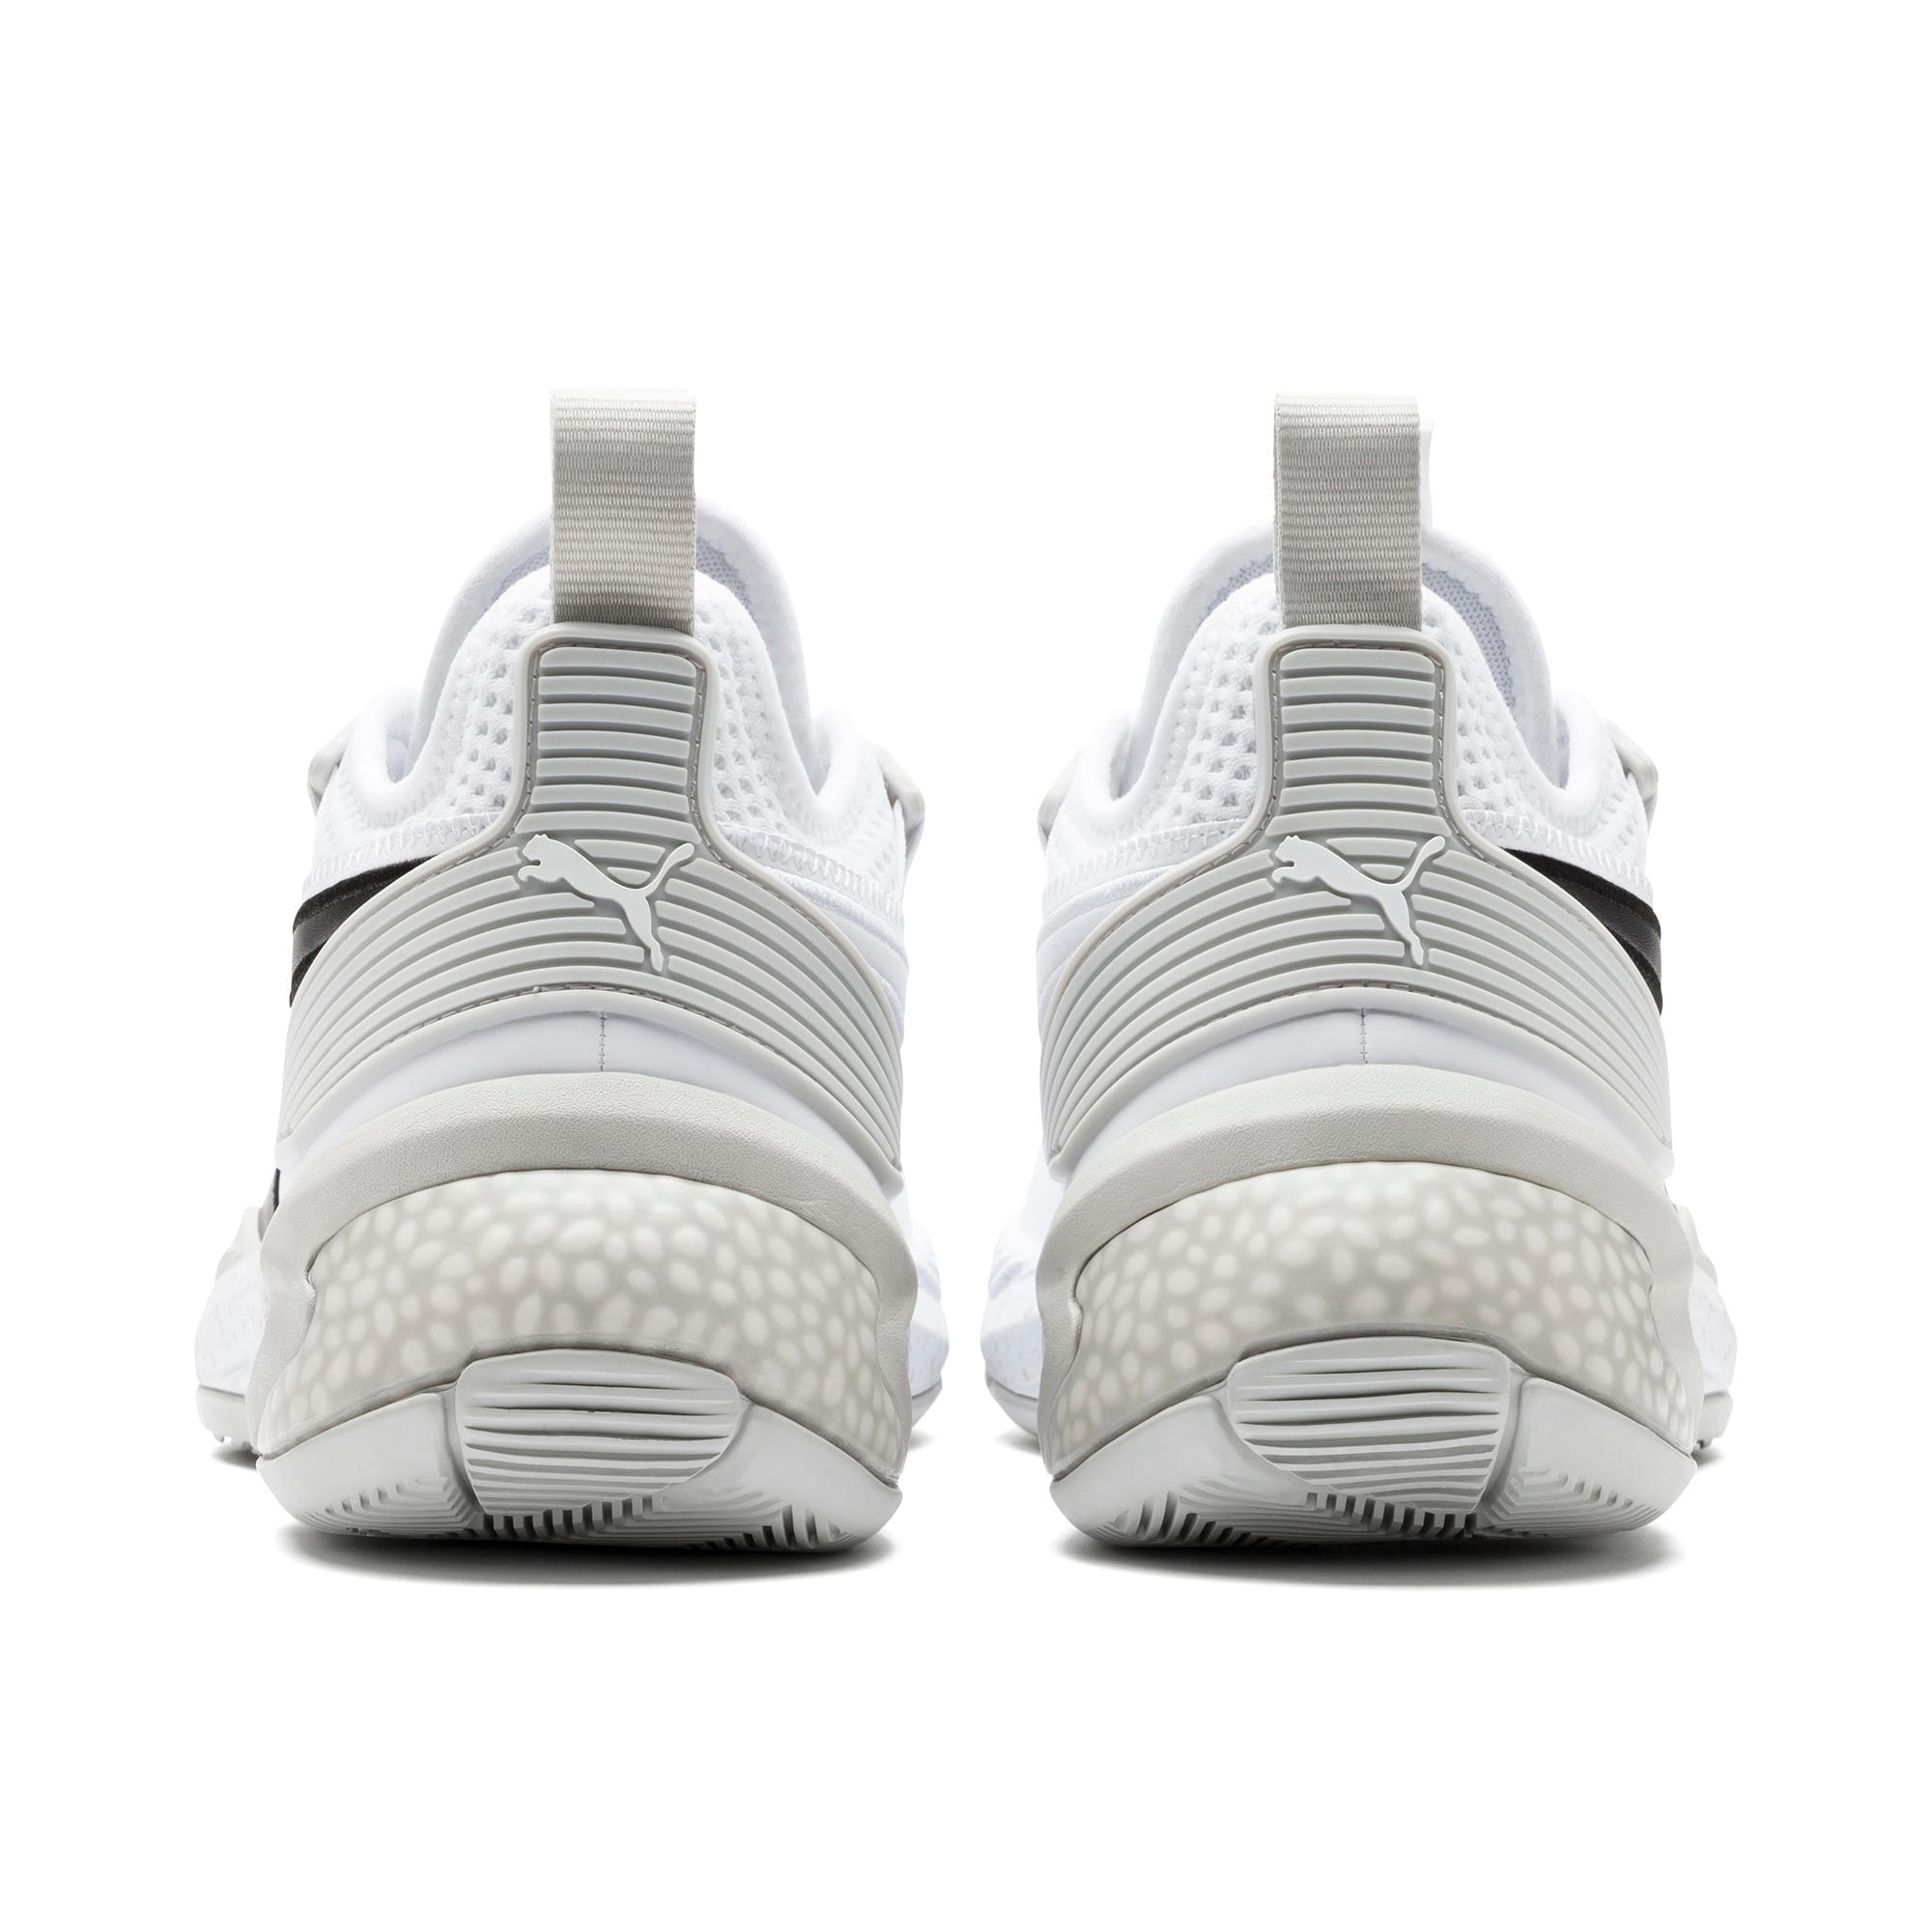 Thumbnail 3 of Uproar Core Basketball Shoes, Puma White-Glacier Gray, medium